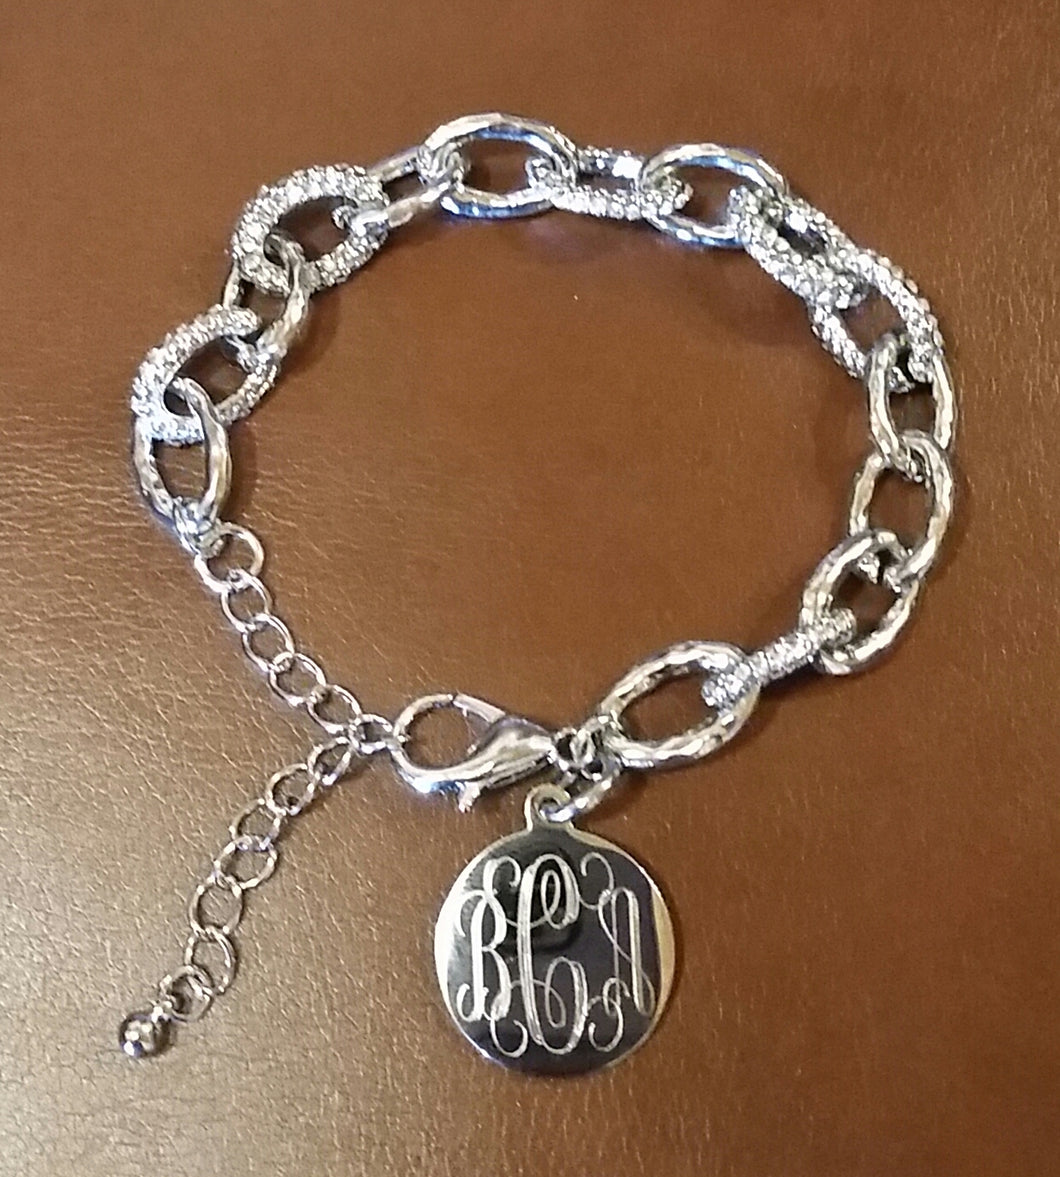 Stylish Silver with Crystals Link Bracelet Blank or Monogram Engraved